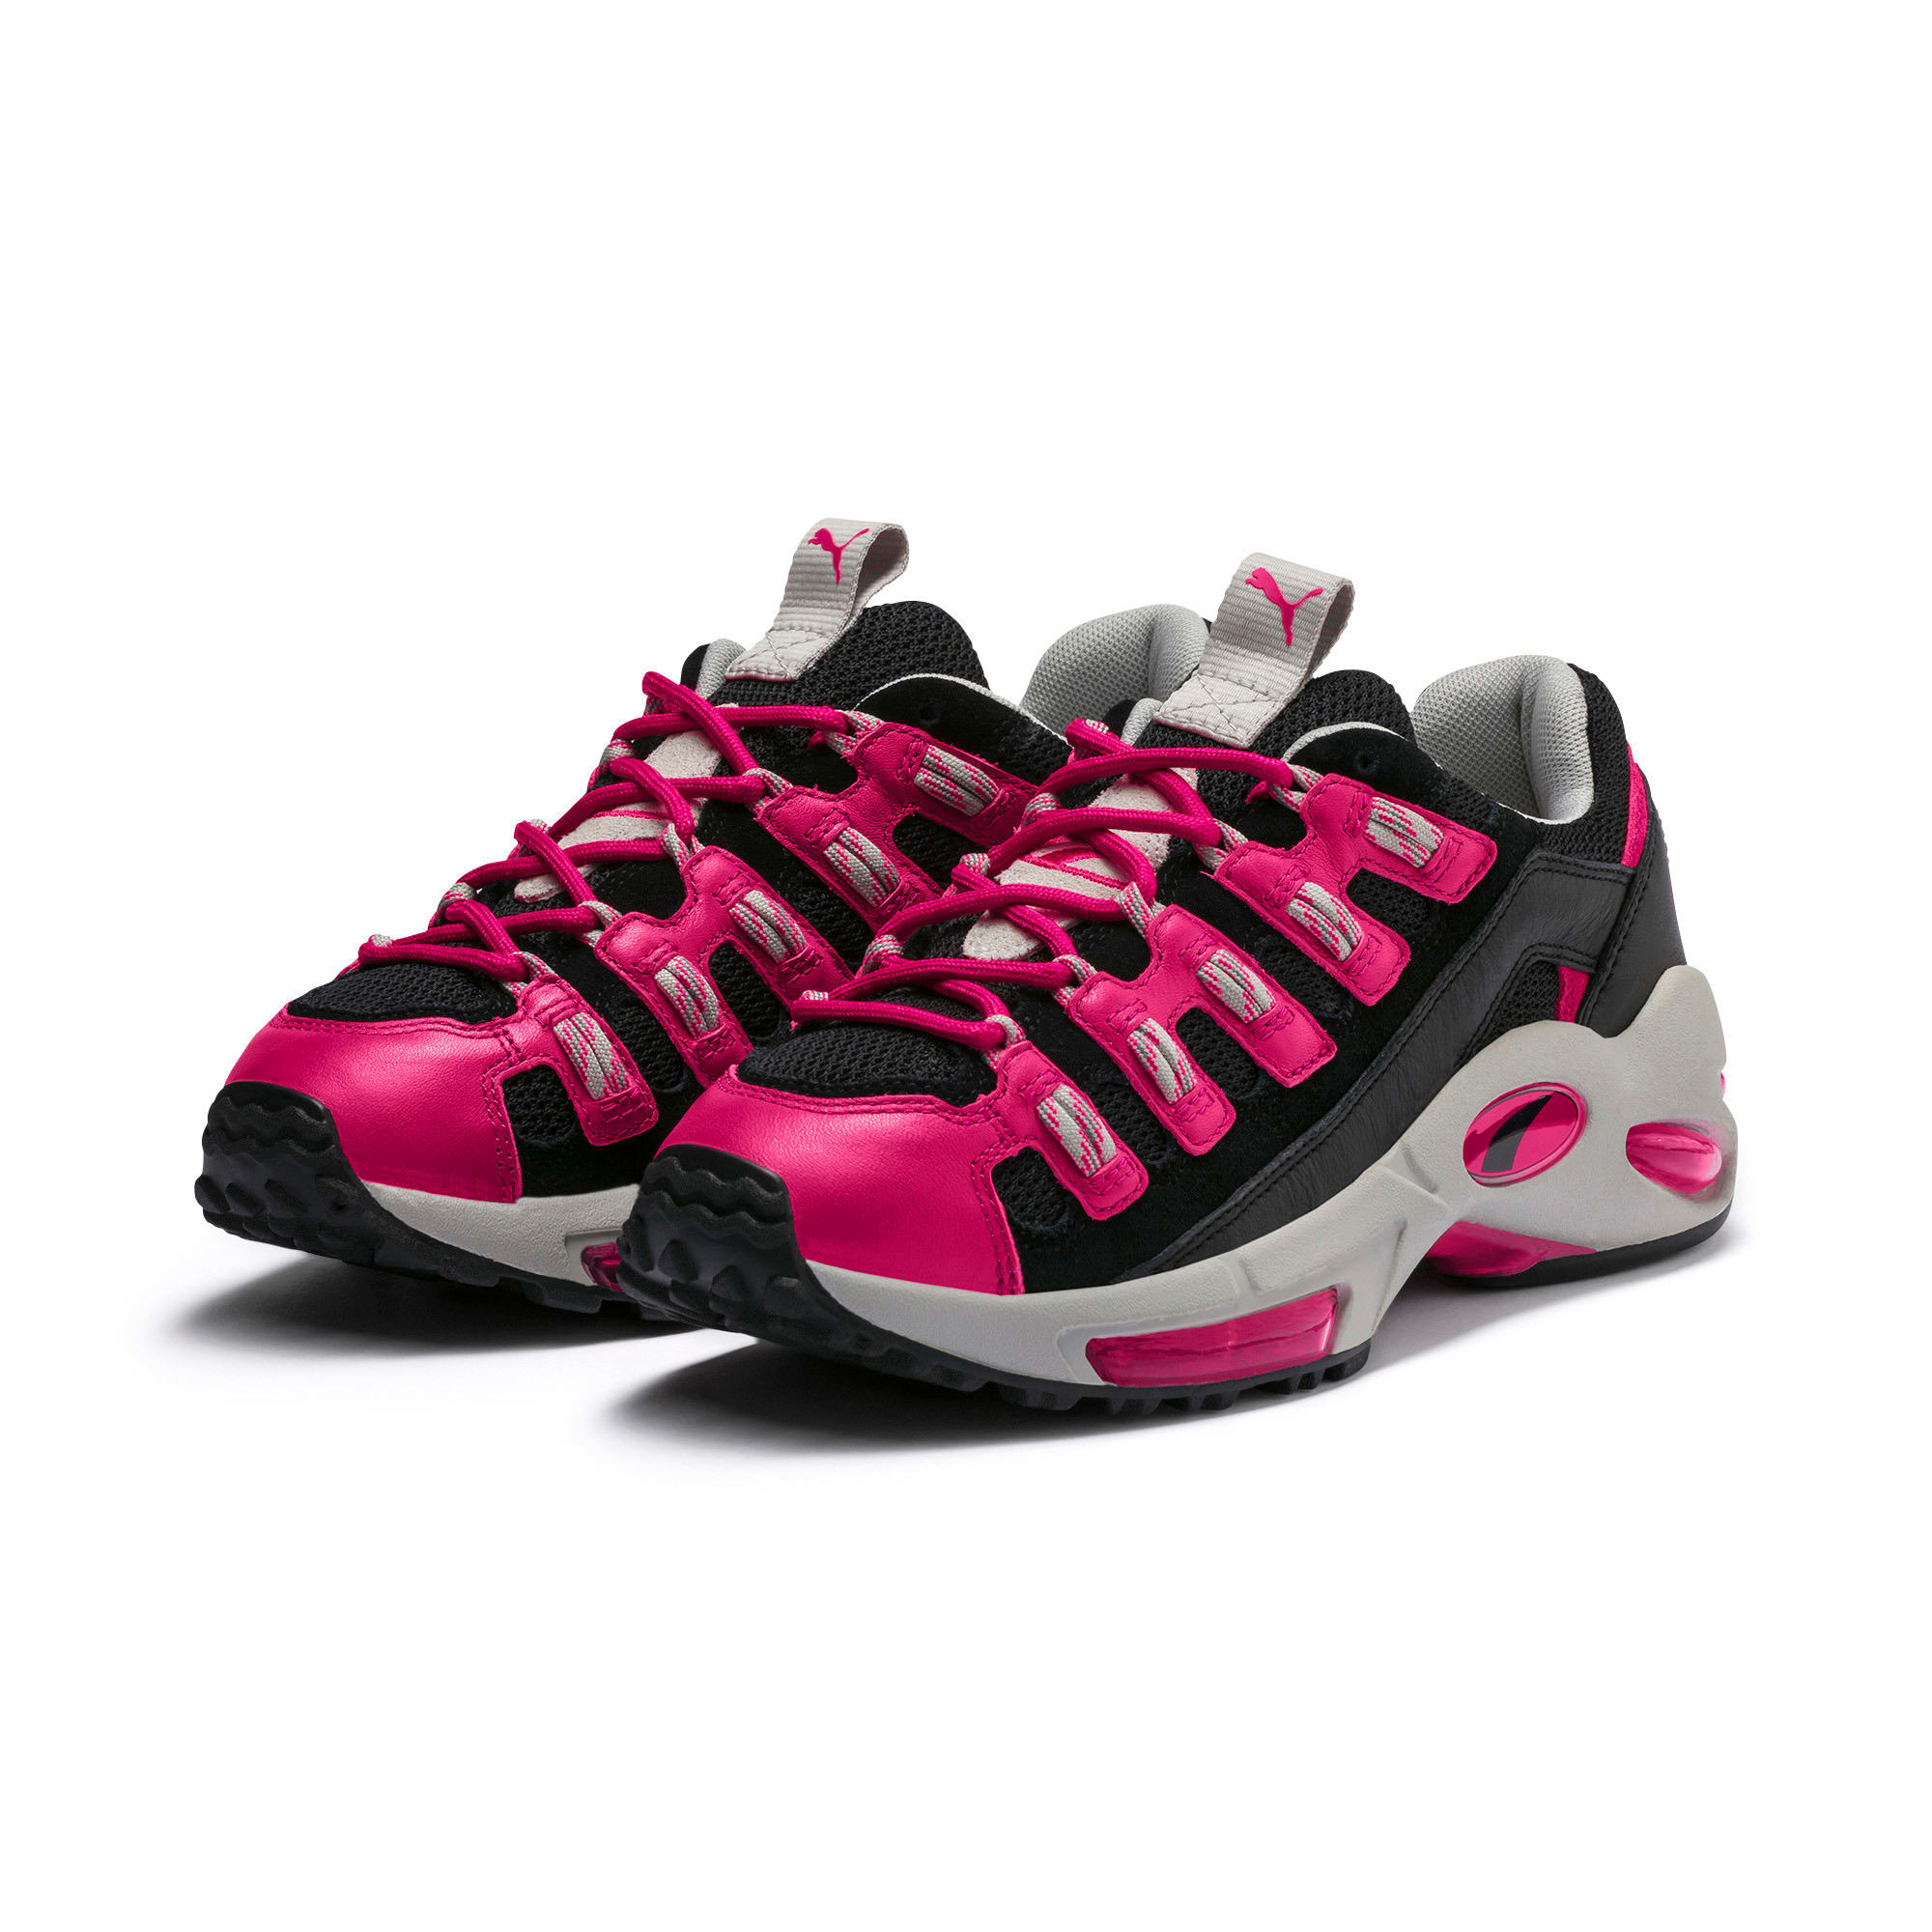 Thumbnail 2 of CELL ENDURA スニーカー, Puma Black-Fuchsia Purple, medium-JPN